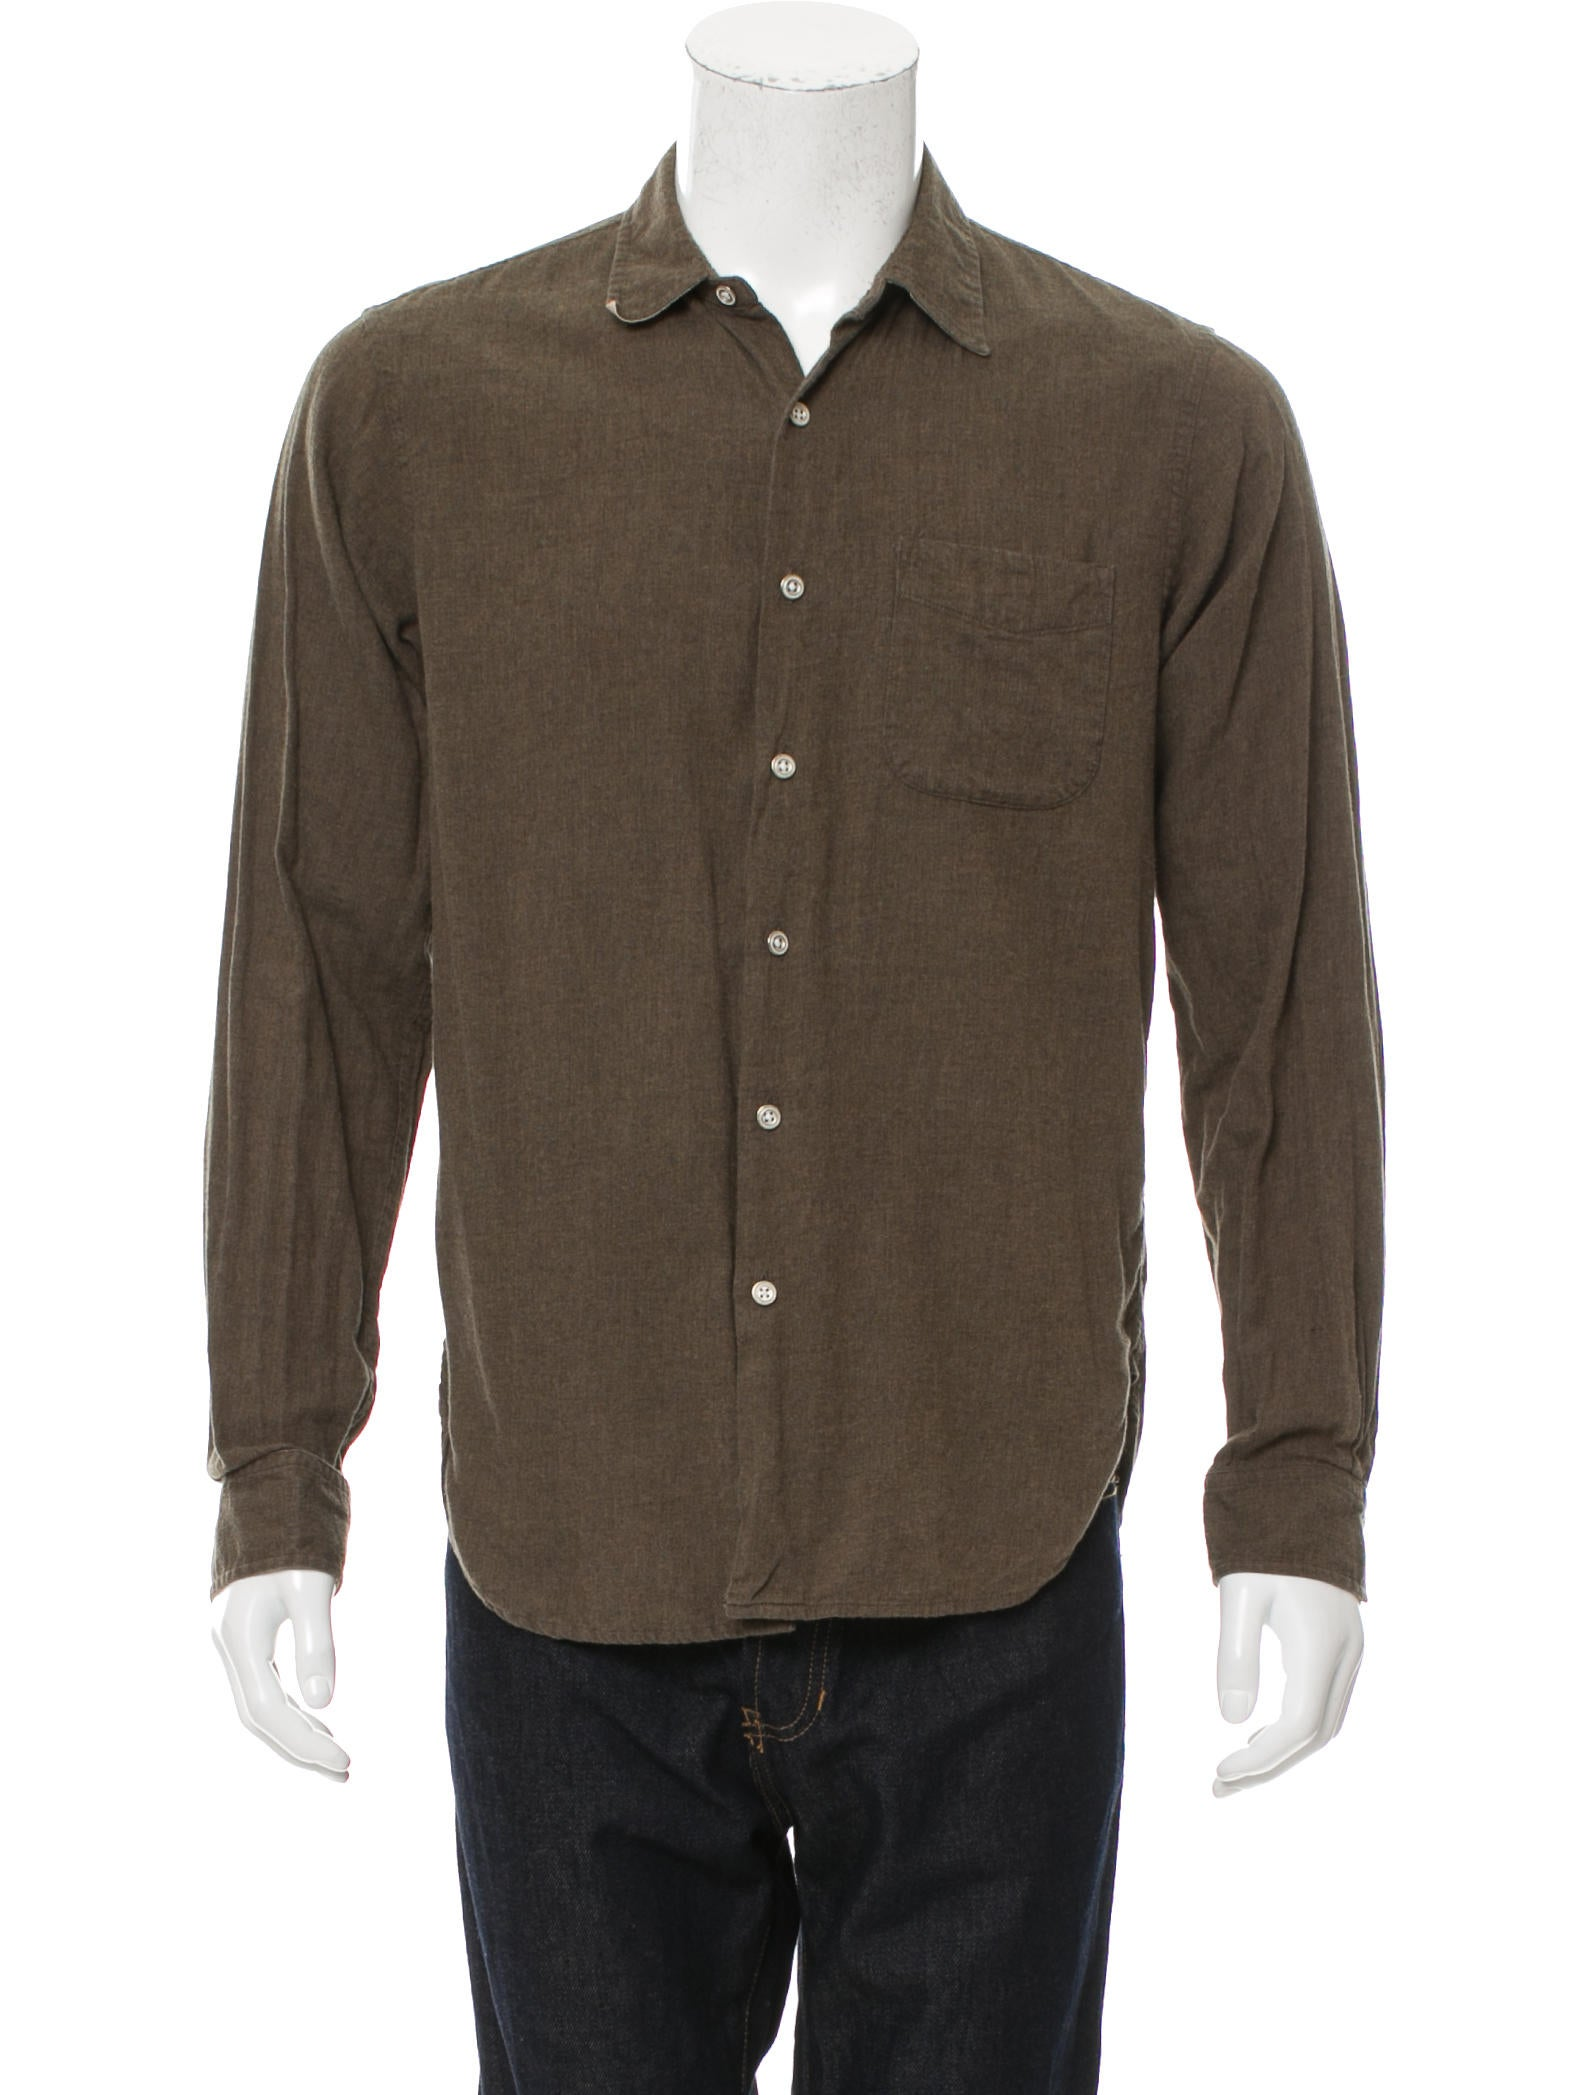 Rag Bone Woven Button Up Shirt Clothing Wragb69398